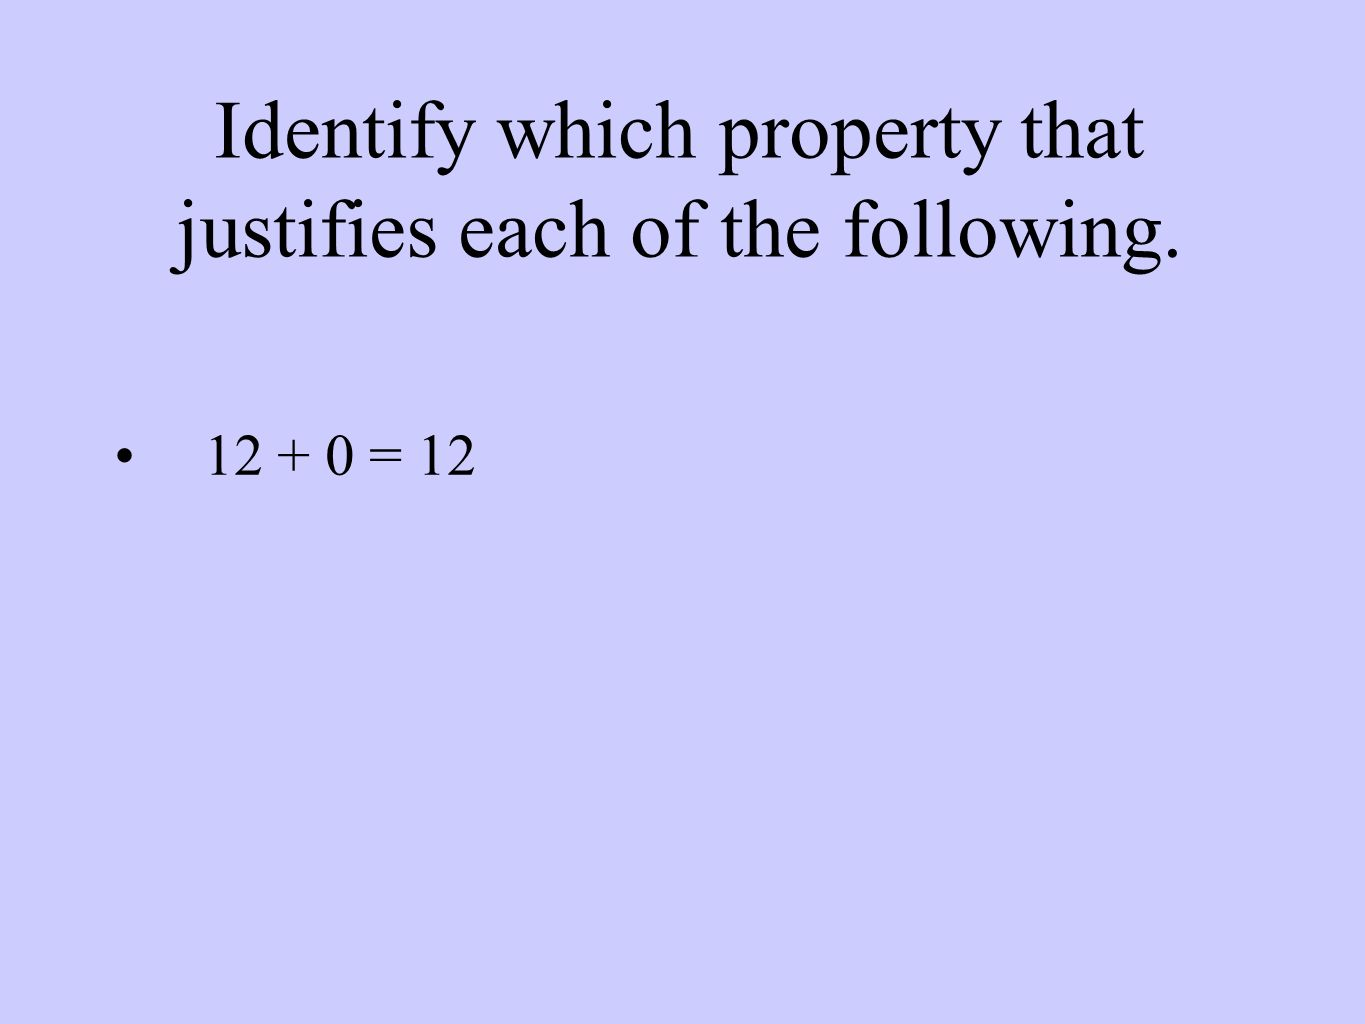 Identify which property that justifies each of the following = 12